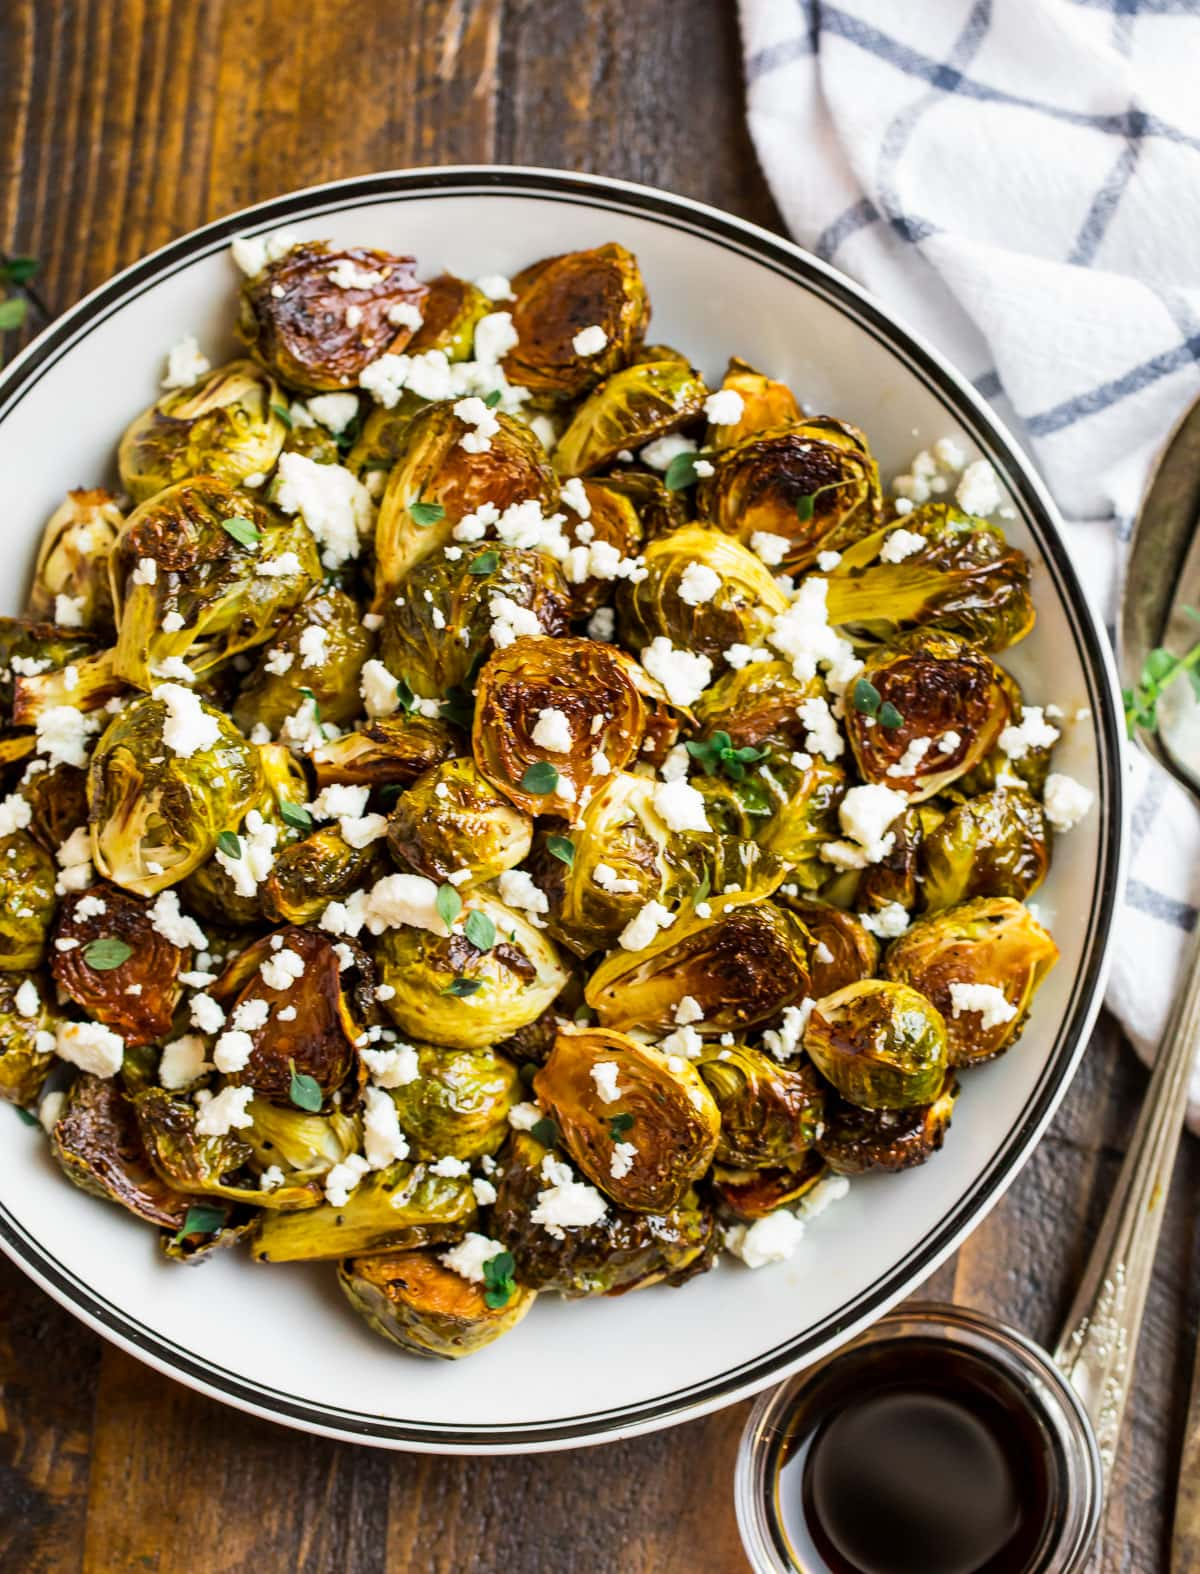 A bowl of Brussels sprouts with balsamic